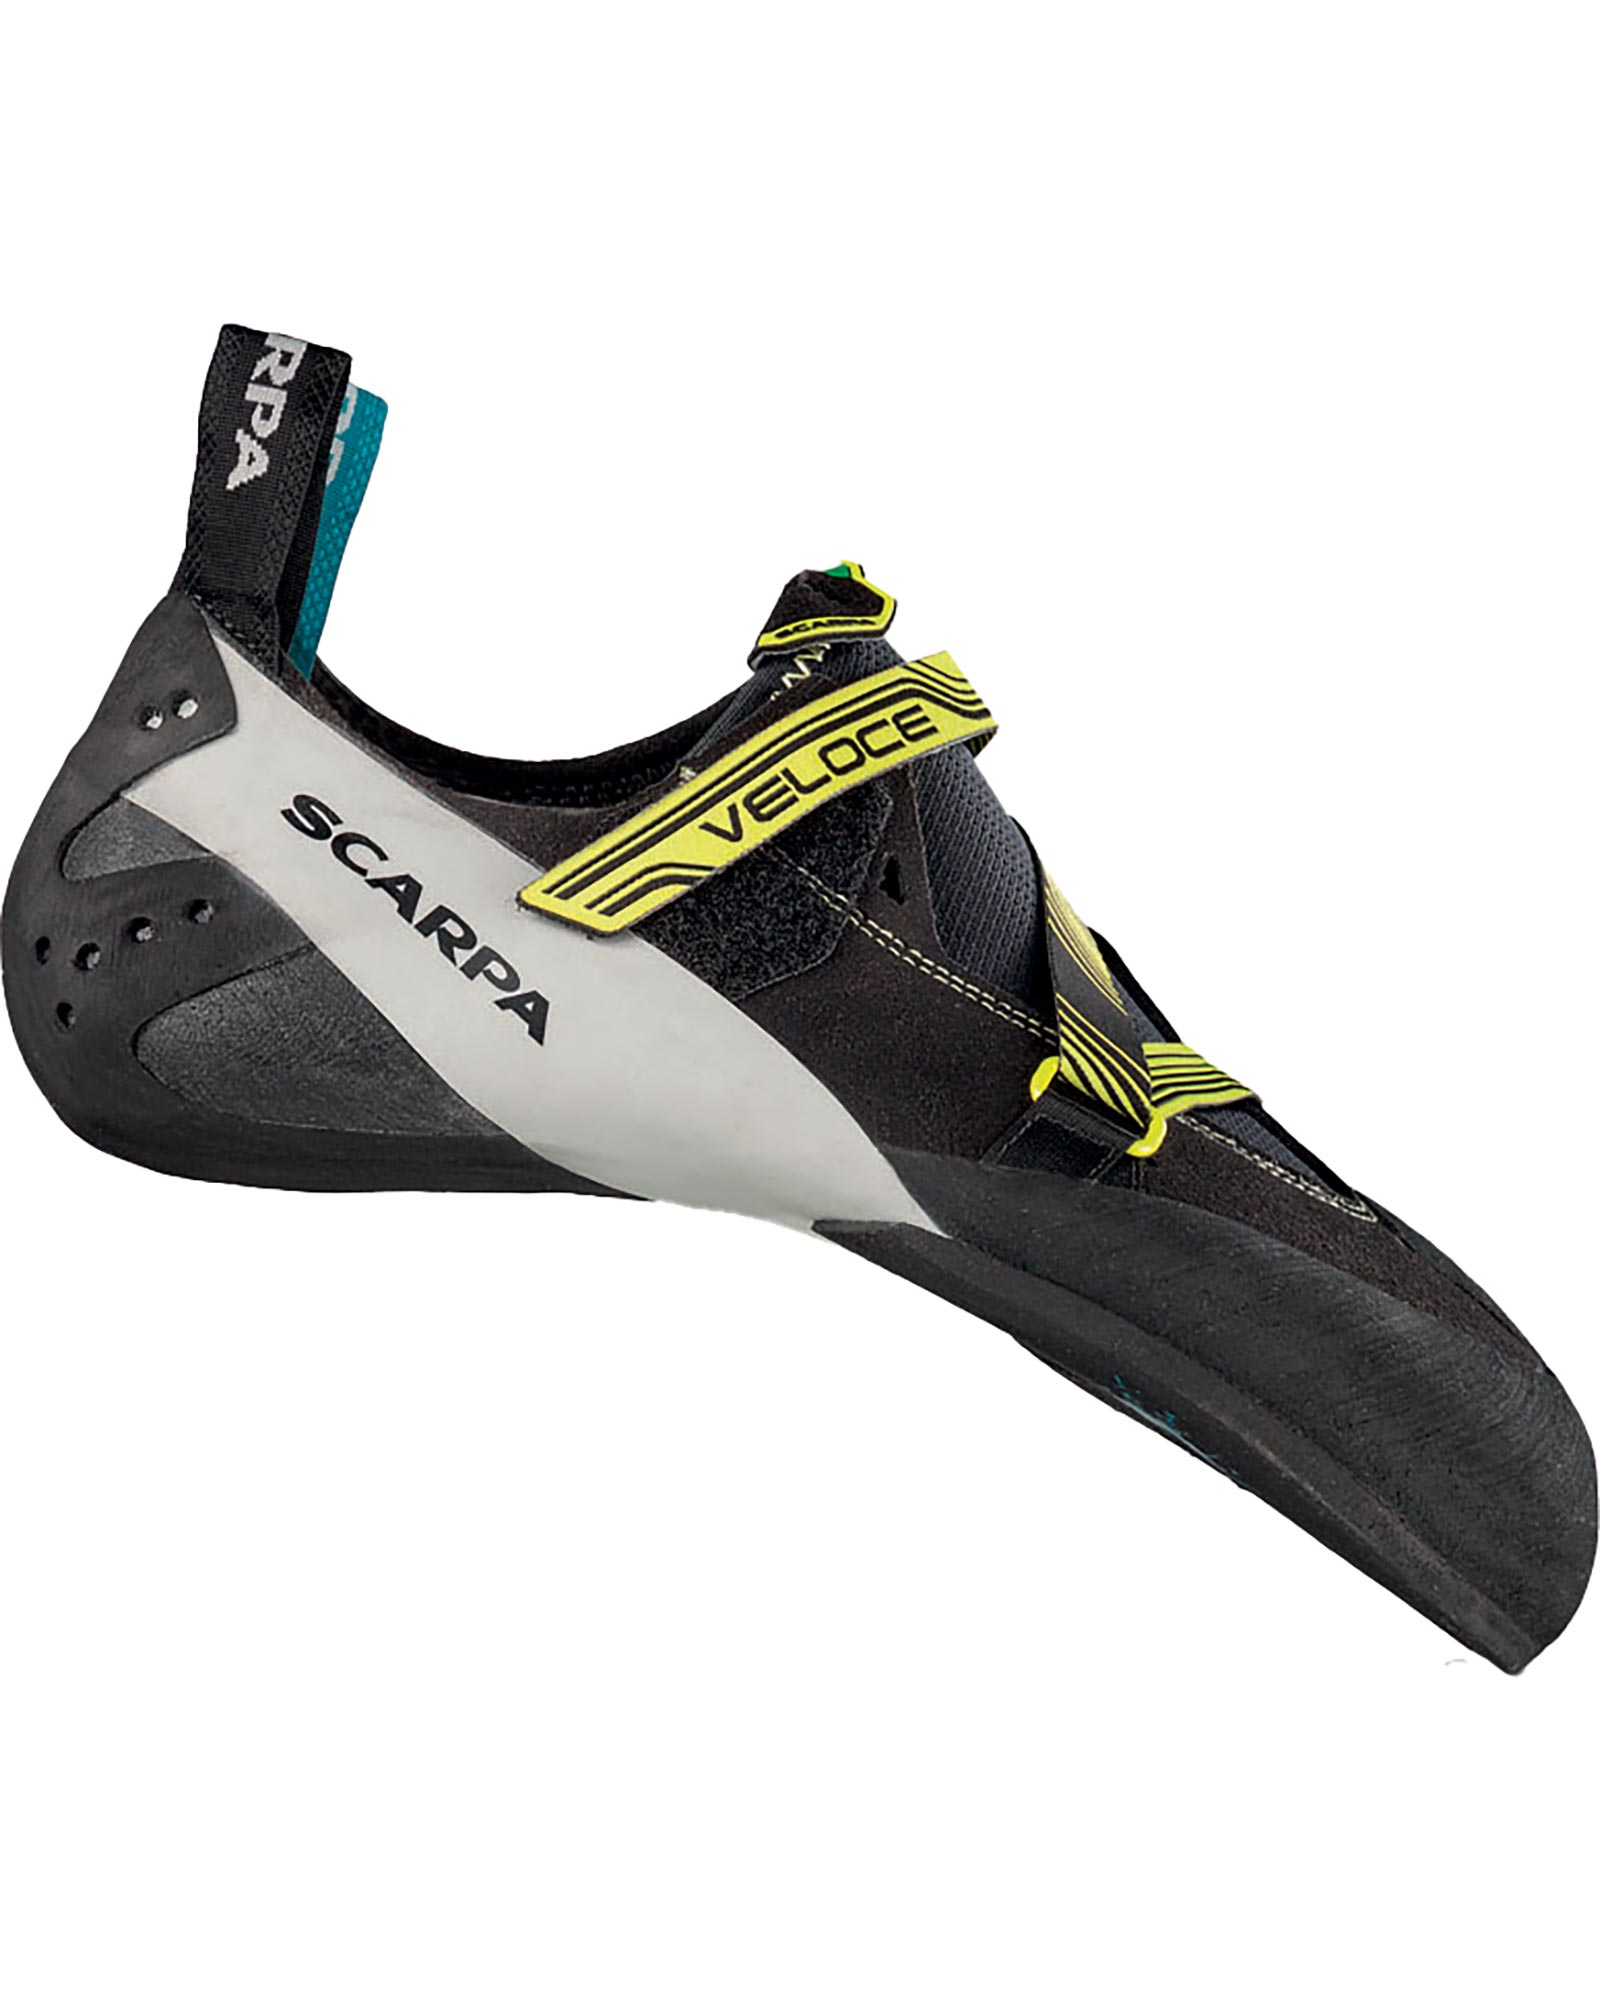 Scarpa Men's Veloce Climbing Shoes 0